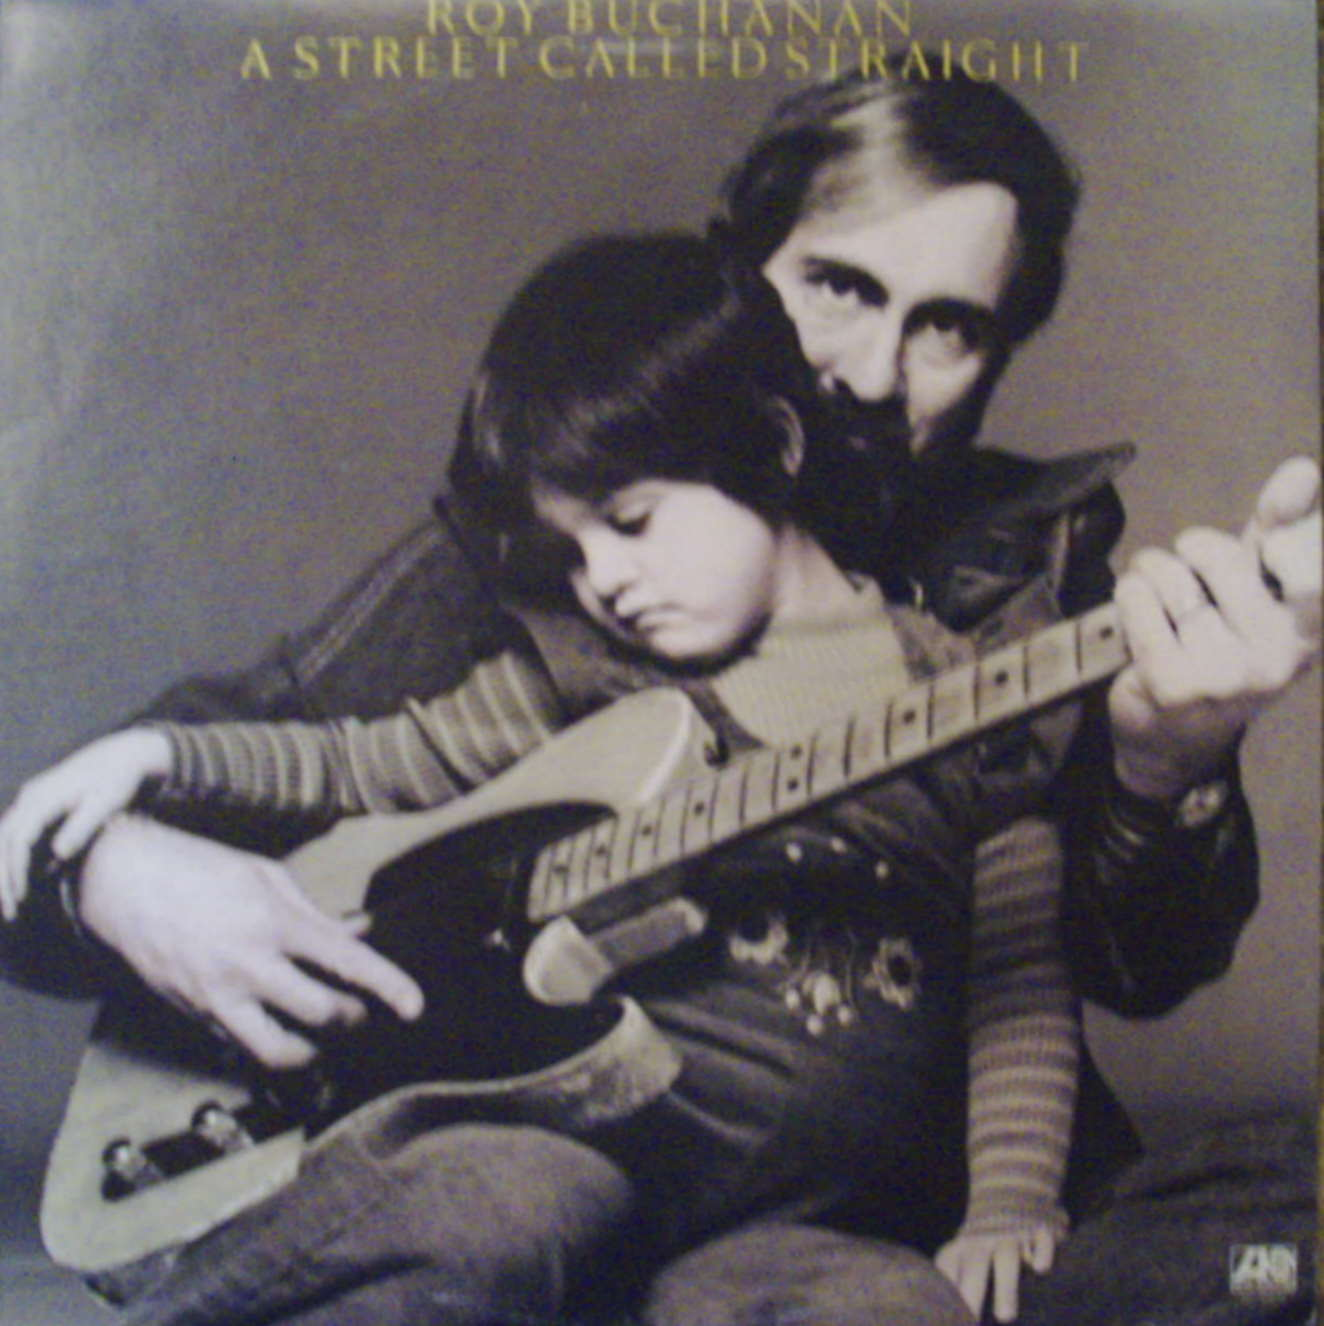 Roy Buchanan - A Street Called Straight Album